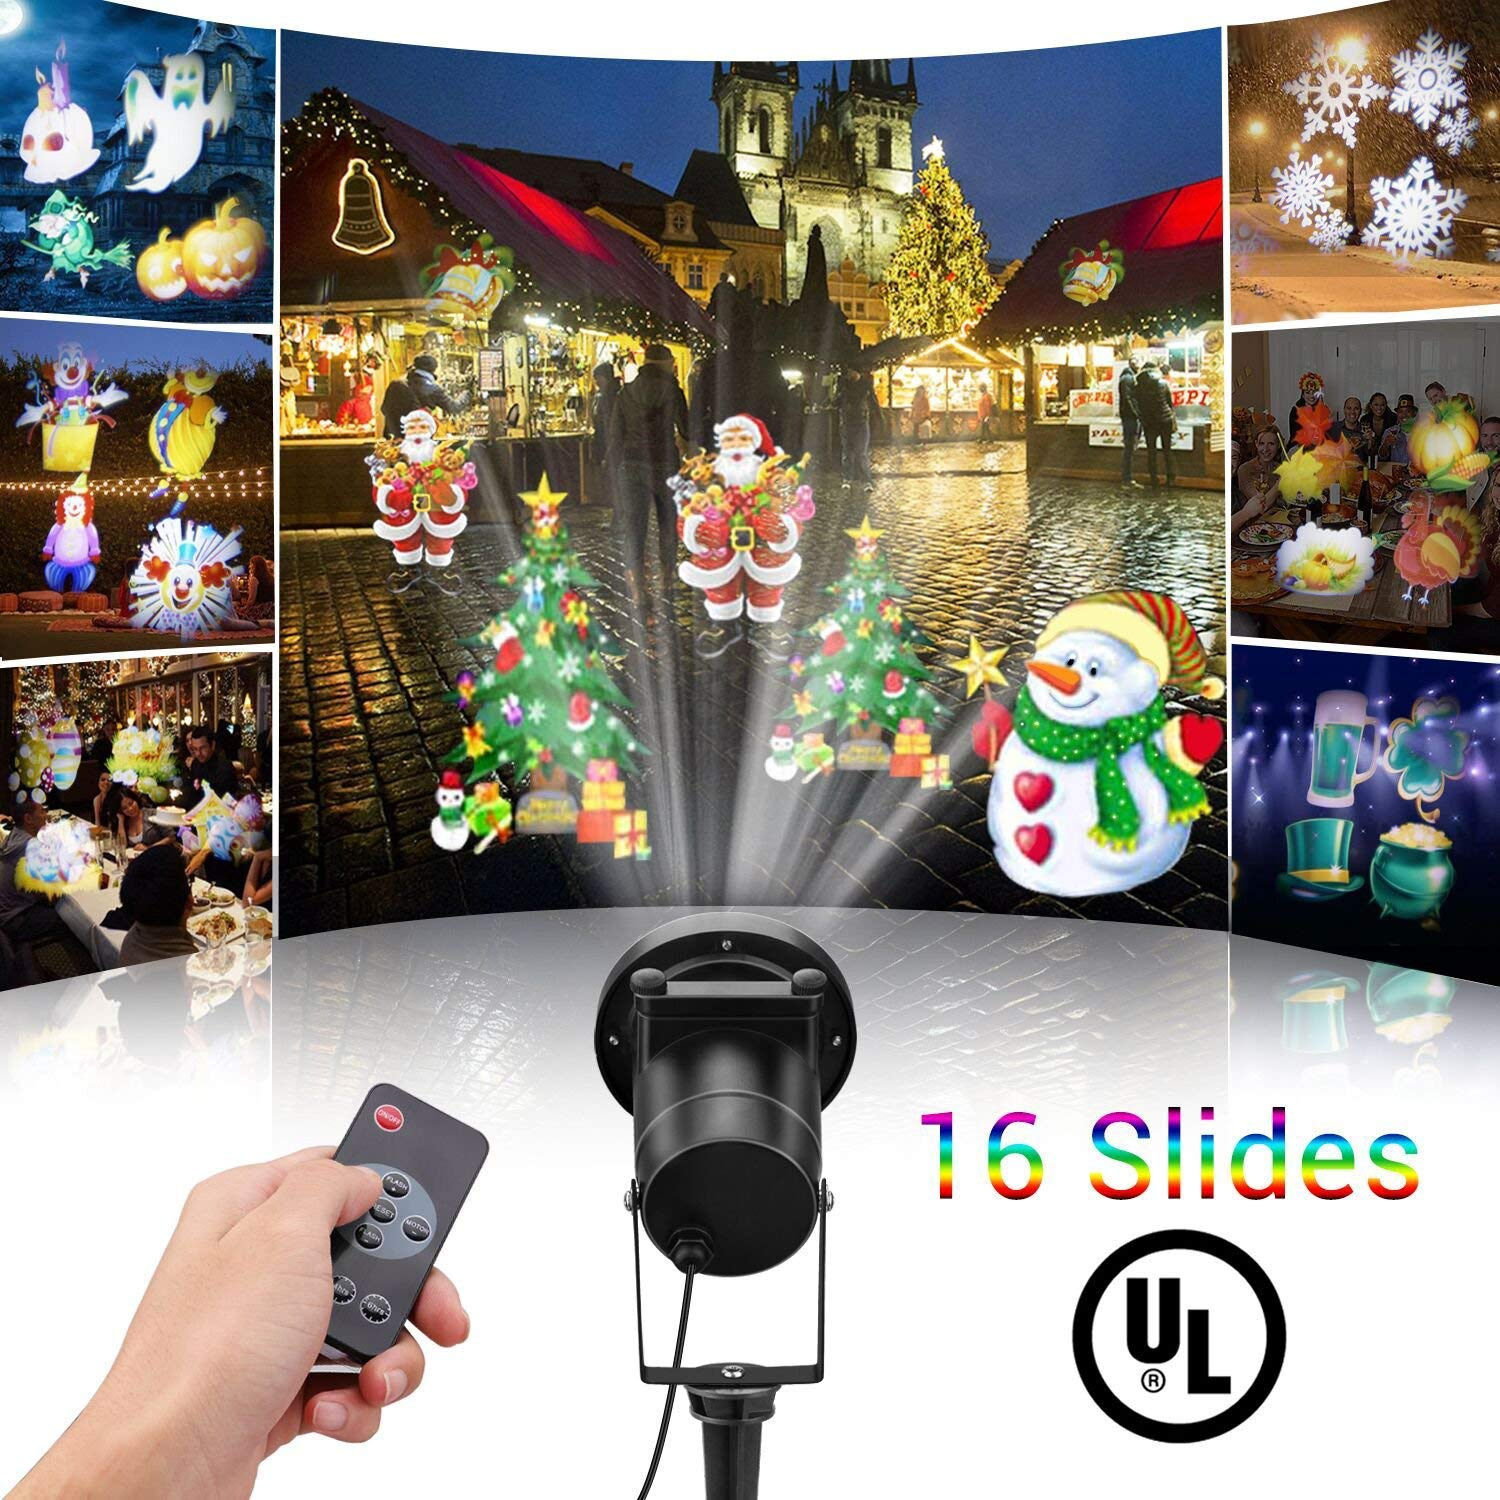 Misika Led Christmas Projector Light Outdoor 2018 Newest Version,Bright Led Holiday Landscape Spotlight with 16 Slides Multicolor Dynamic Lighting Show for Halloween Party Decoration Lampm by misika (Image #1)